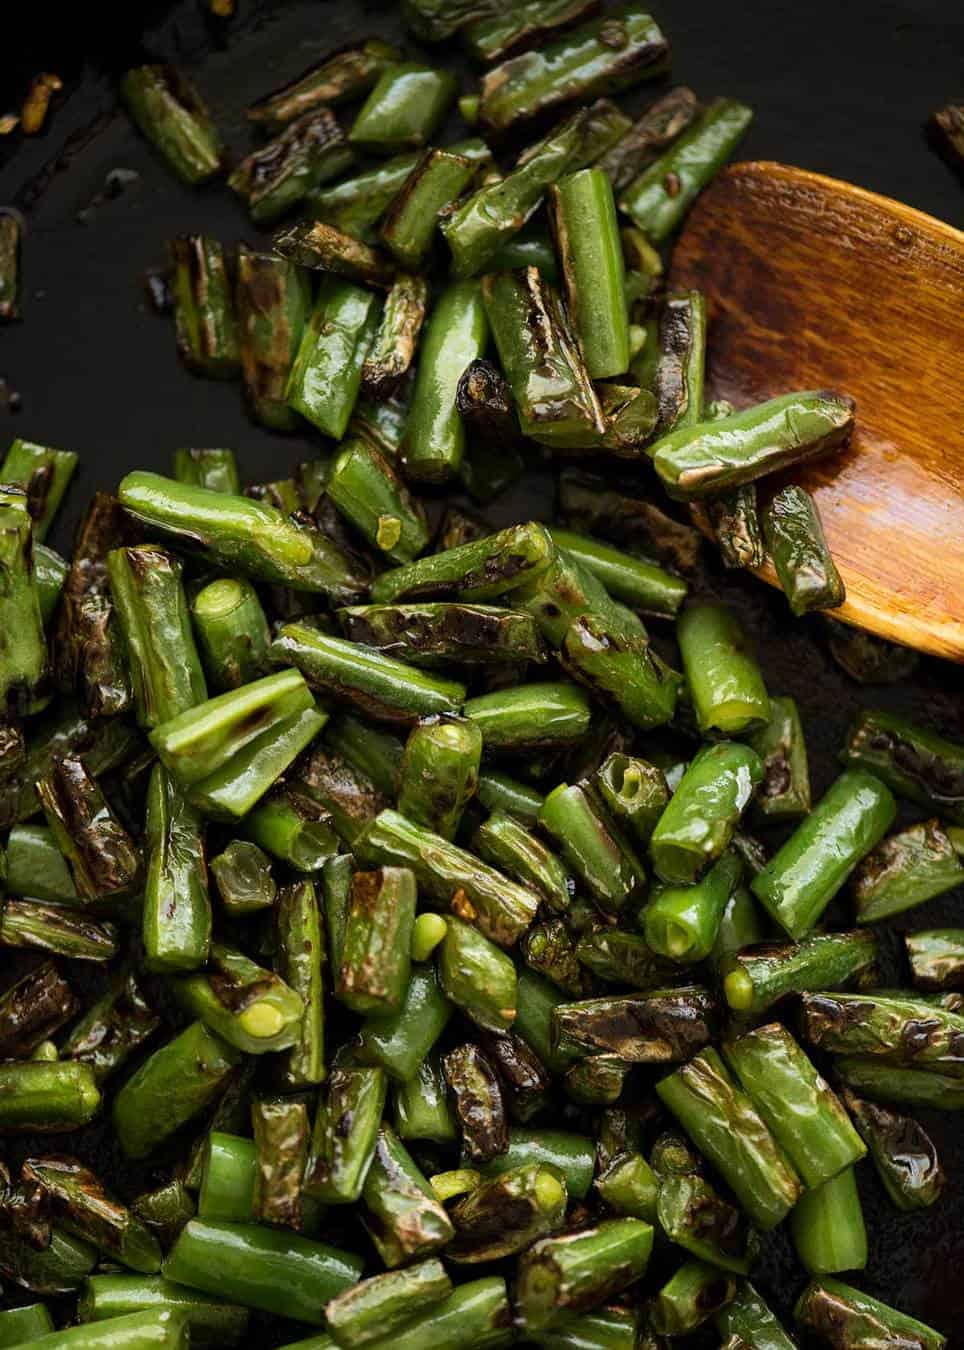 Charred chopped green beans in a black skillet with a wooden spoon.